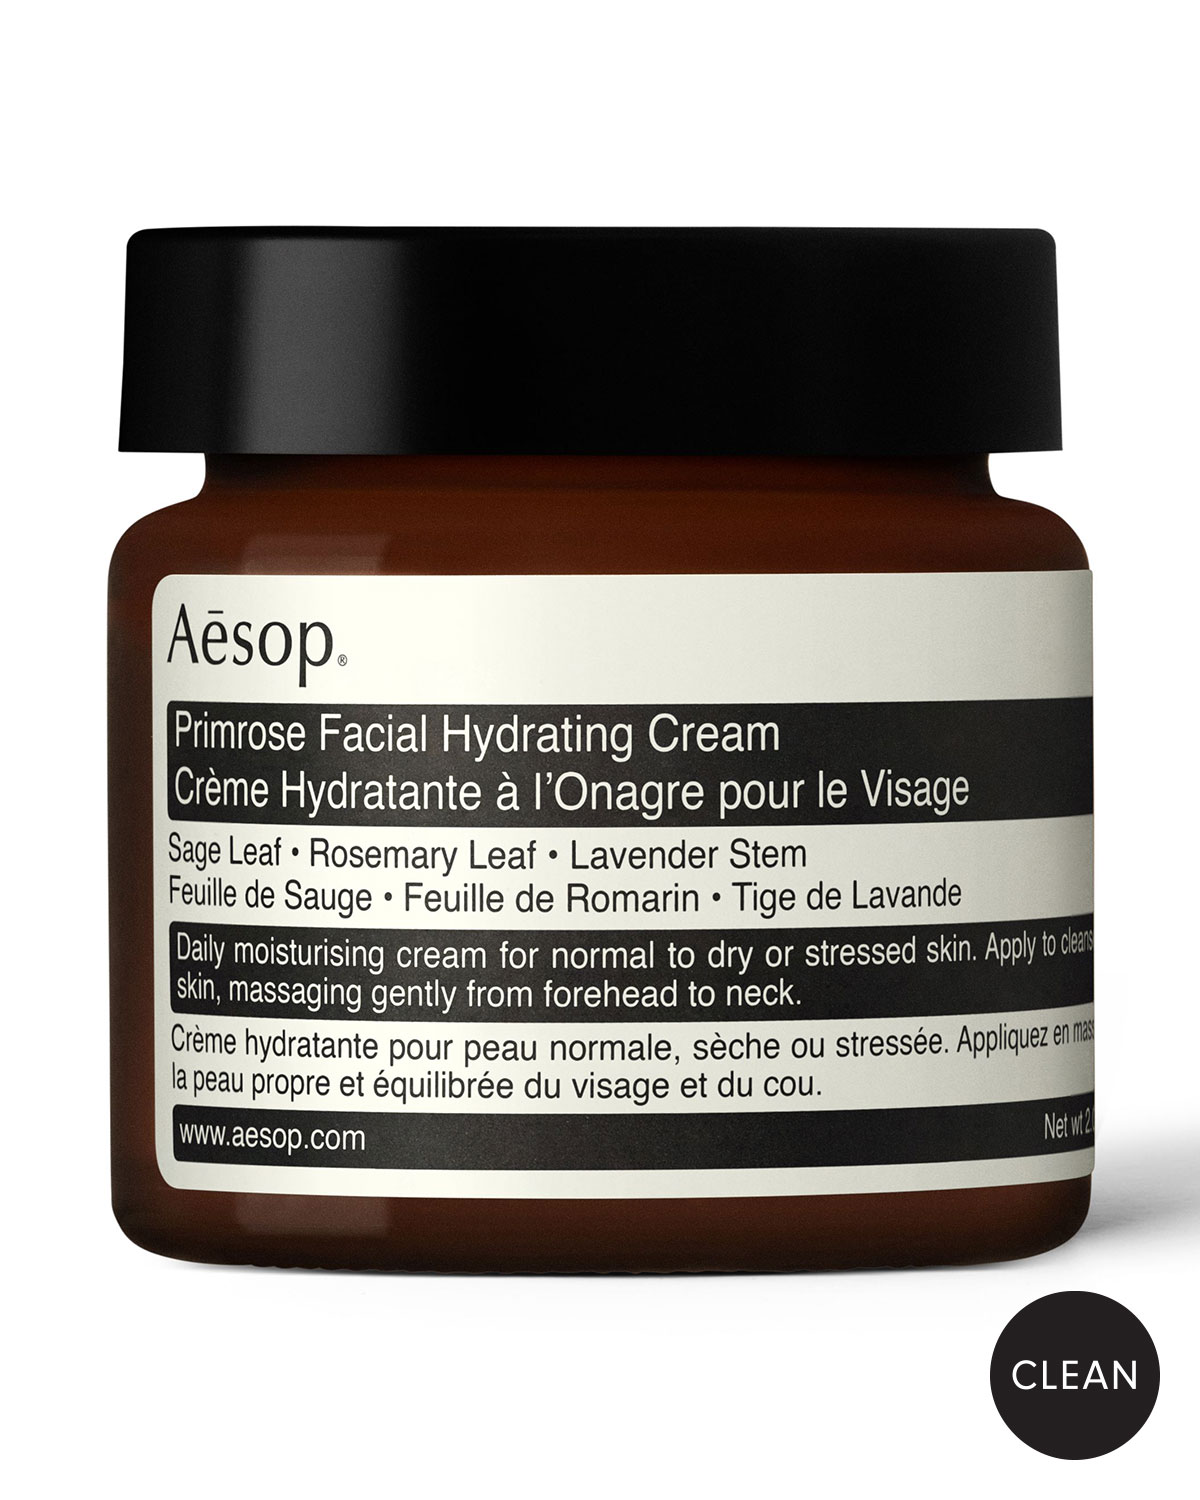 Aesop 2 oz. Primrose Facial Hydrating Cream